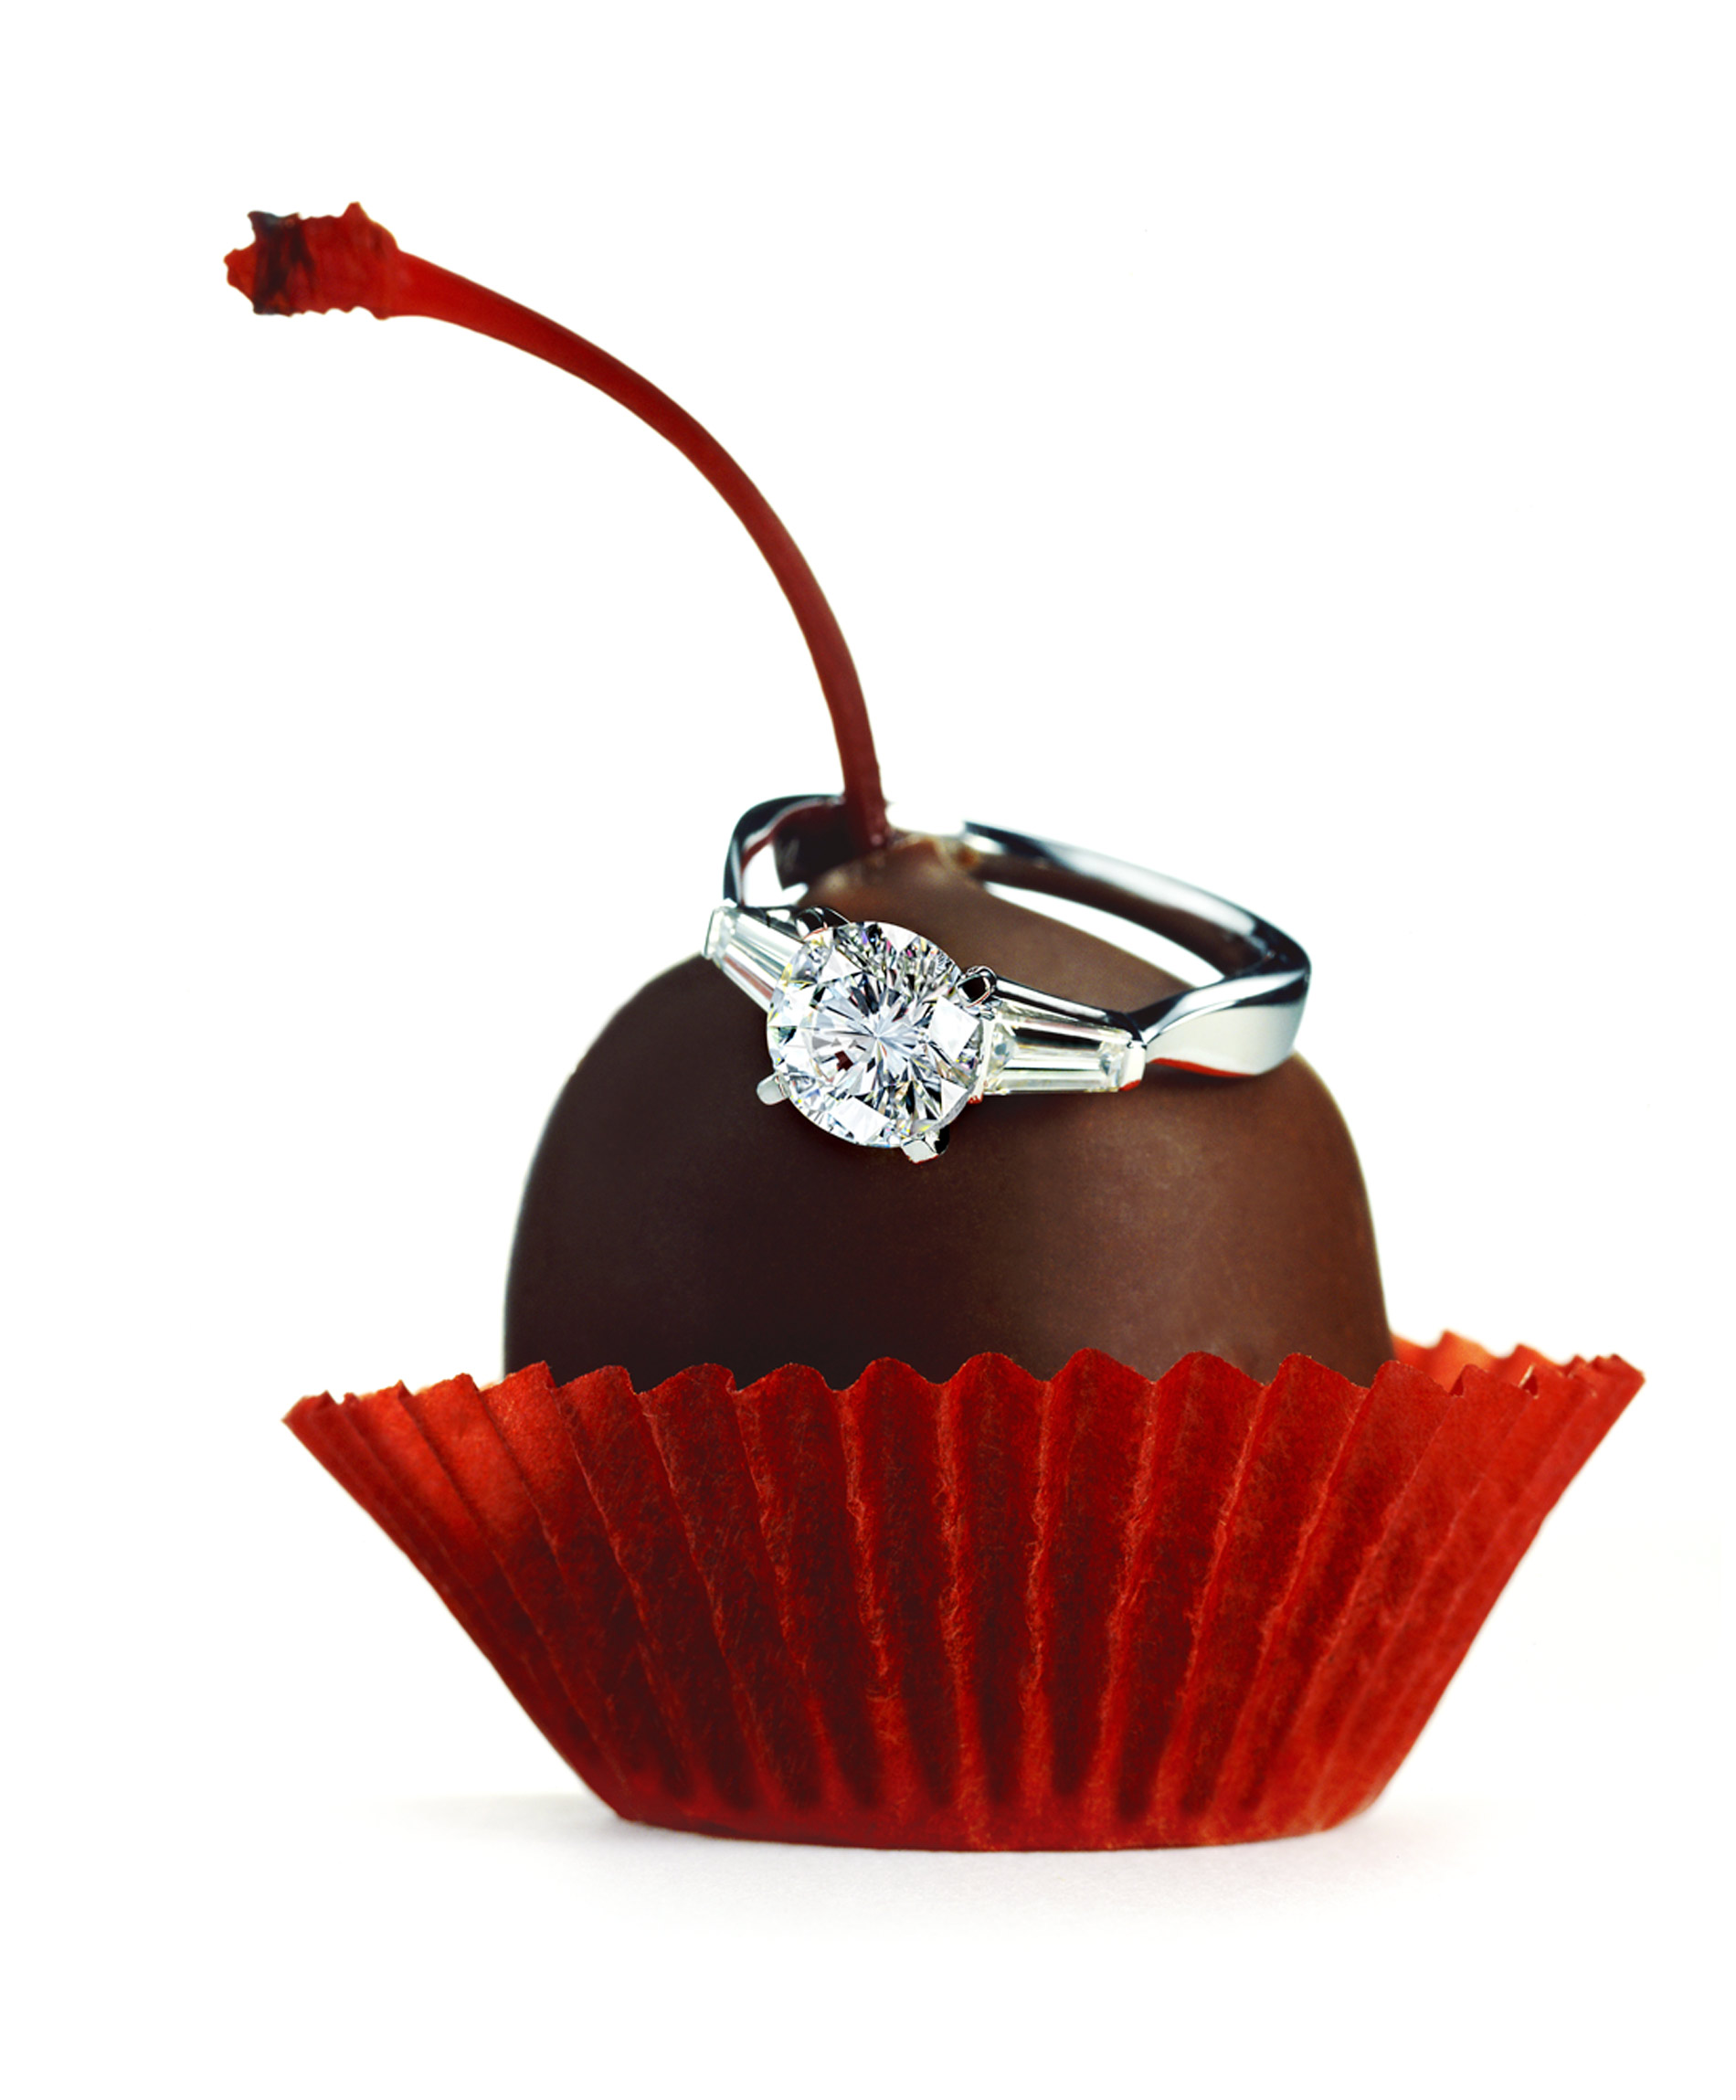 Rum Swirl; Ring on Chocolate Cherry; Glasses